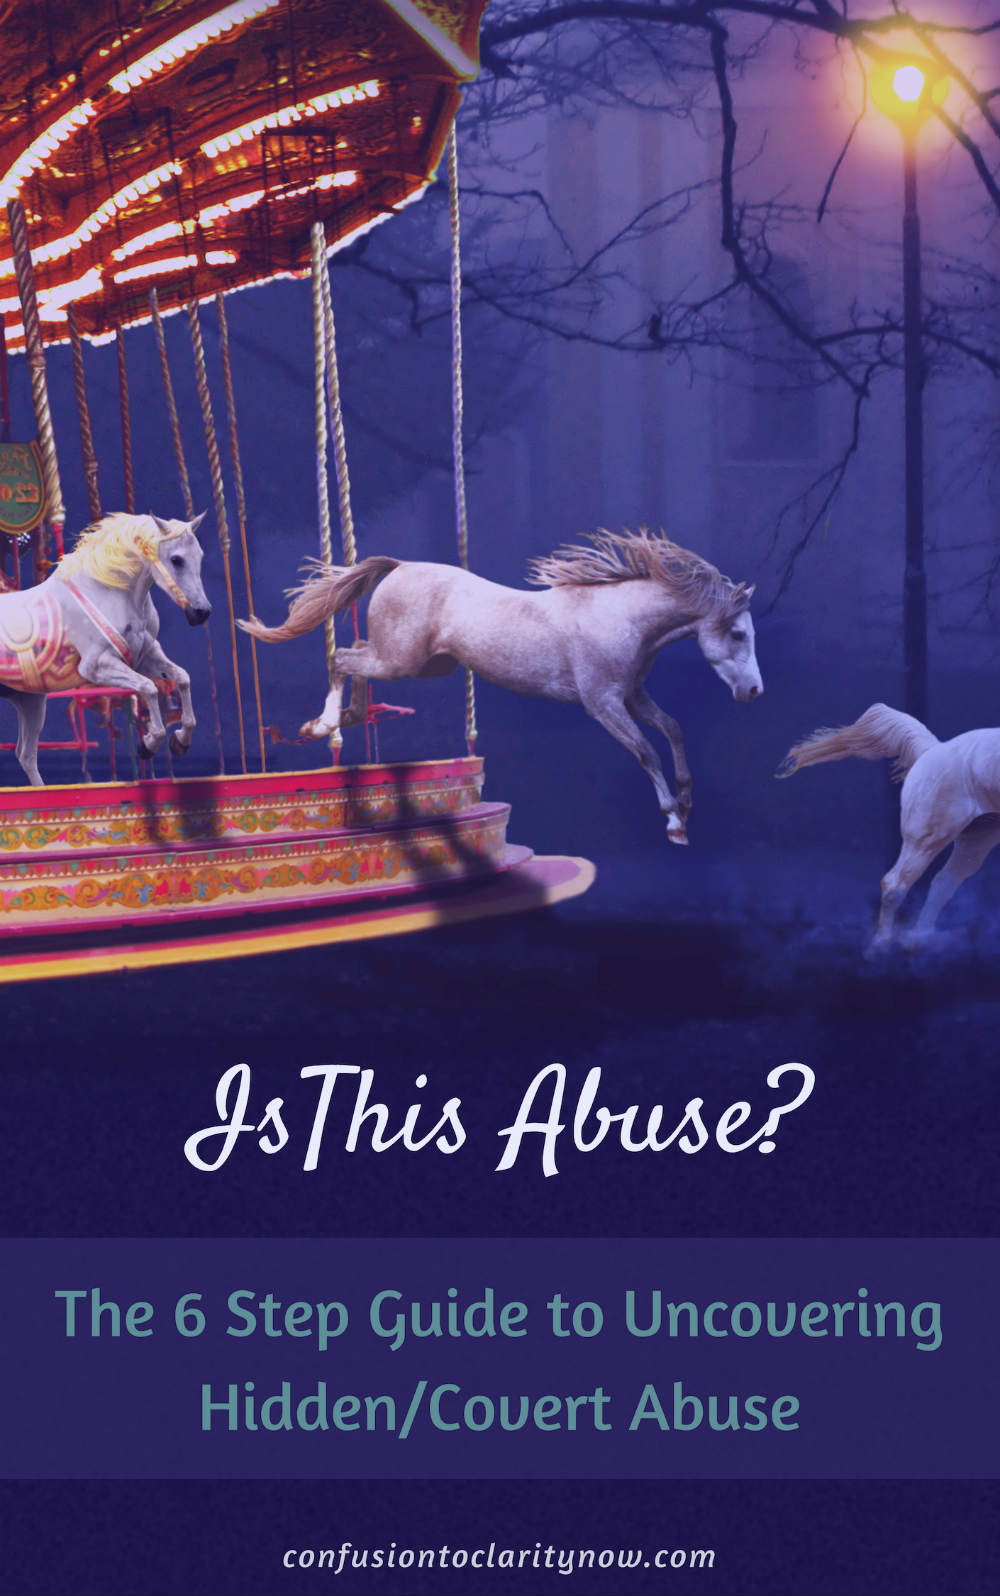 """Is This Abuse?"" will help you clear away the confusion, see the unseen, and answer your question once and for all. - This 26-page guide covers signs, symptoms, relationship dynamics, characteristics of covert abusers, tactics and covert behaviors in detail."